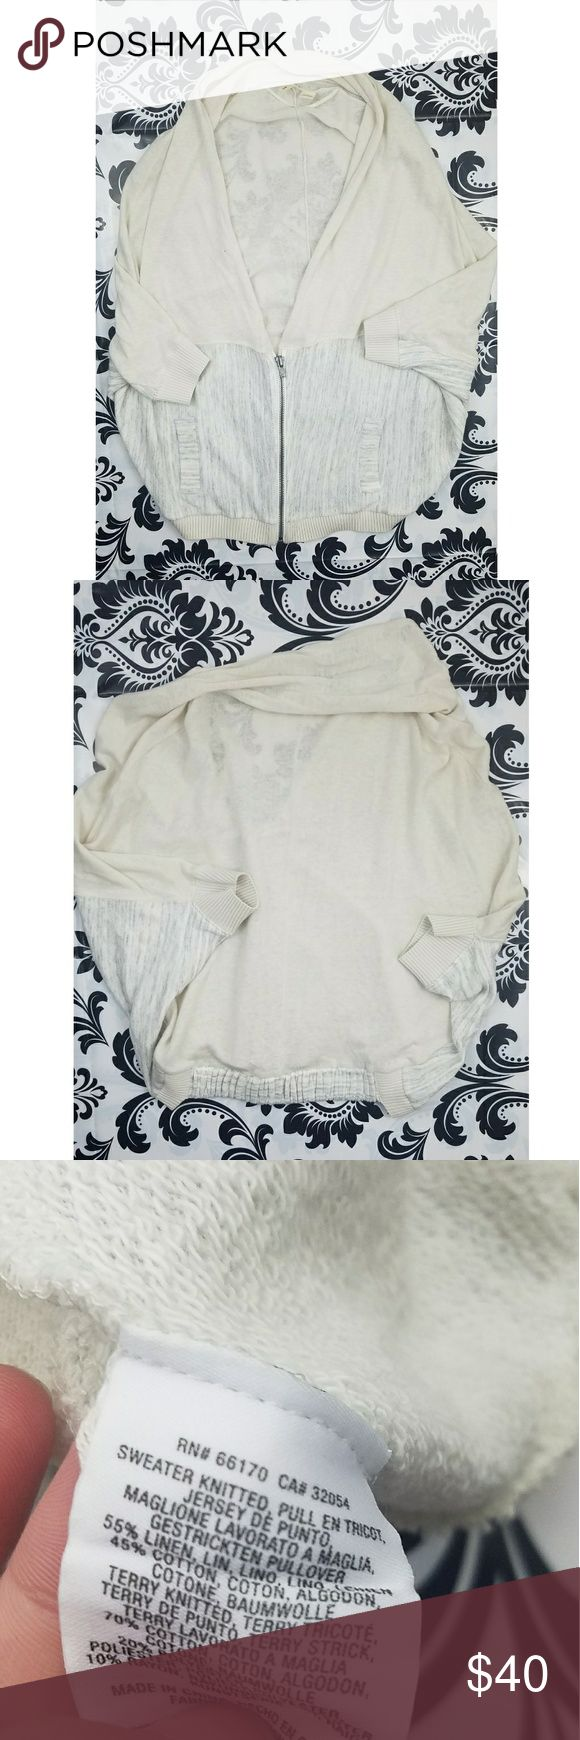 Anthropologie moth zip up Anthropologie moth women's zip up sweater Half sleeve, OVERSIZED zip up Gray and cream colors  Women's Size xsmall Pre Owned good condition Anthropologie Sweaters